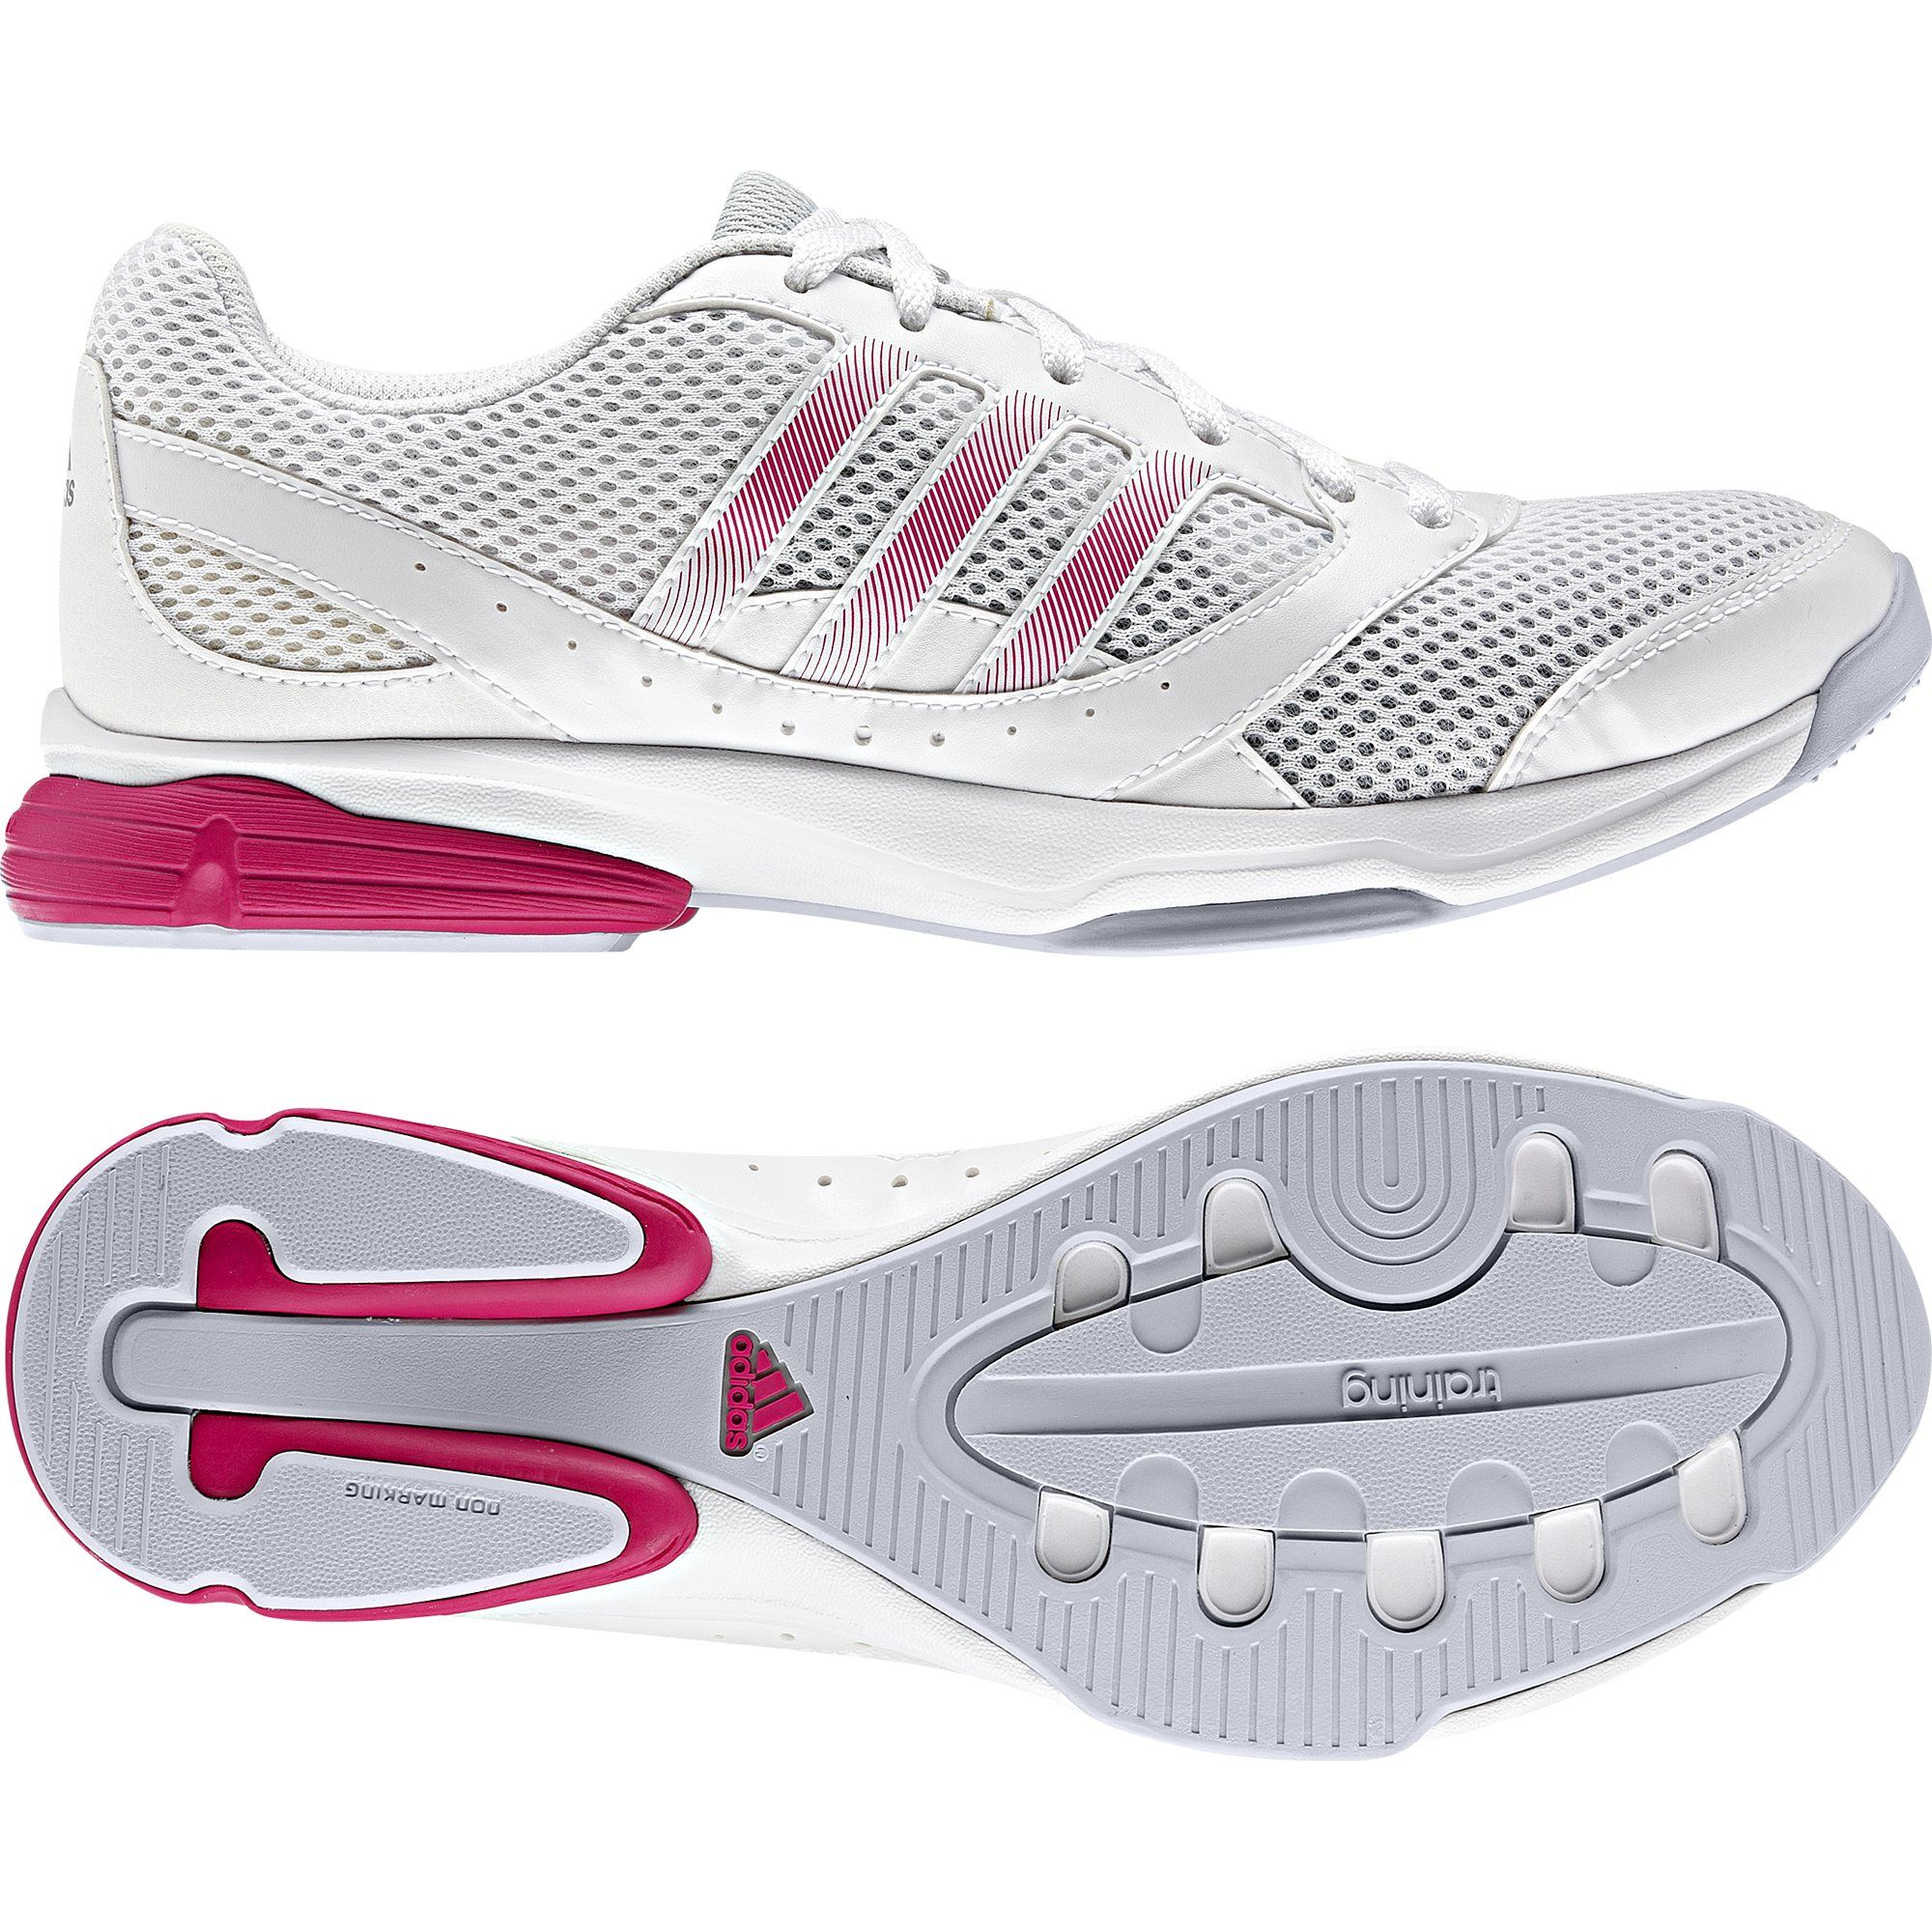 PINK METALLIC SLIP ON SNEAKERS TRAINERS RUNNING SHOES GYM WOMENS GIRLS